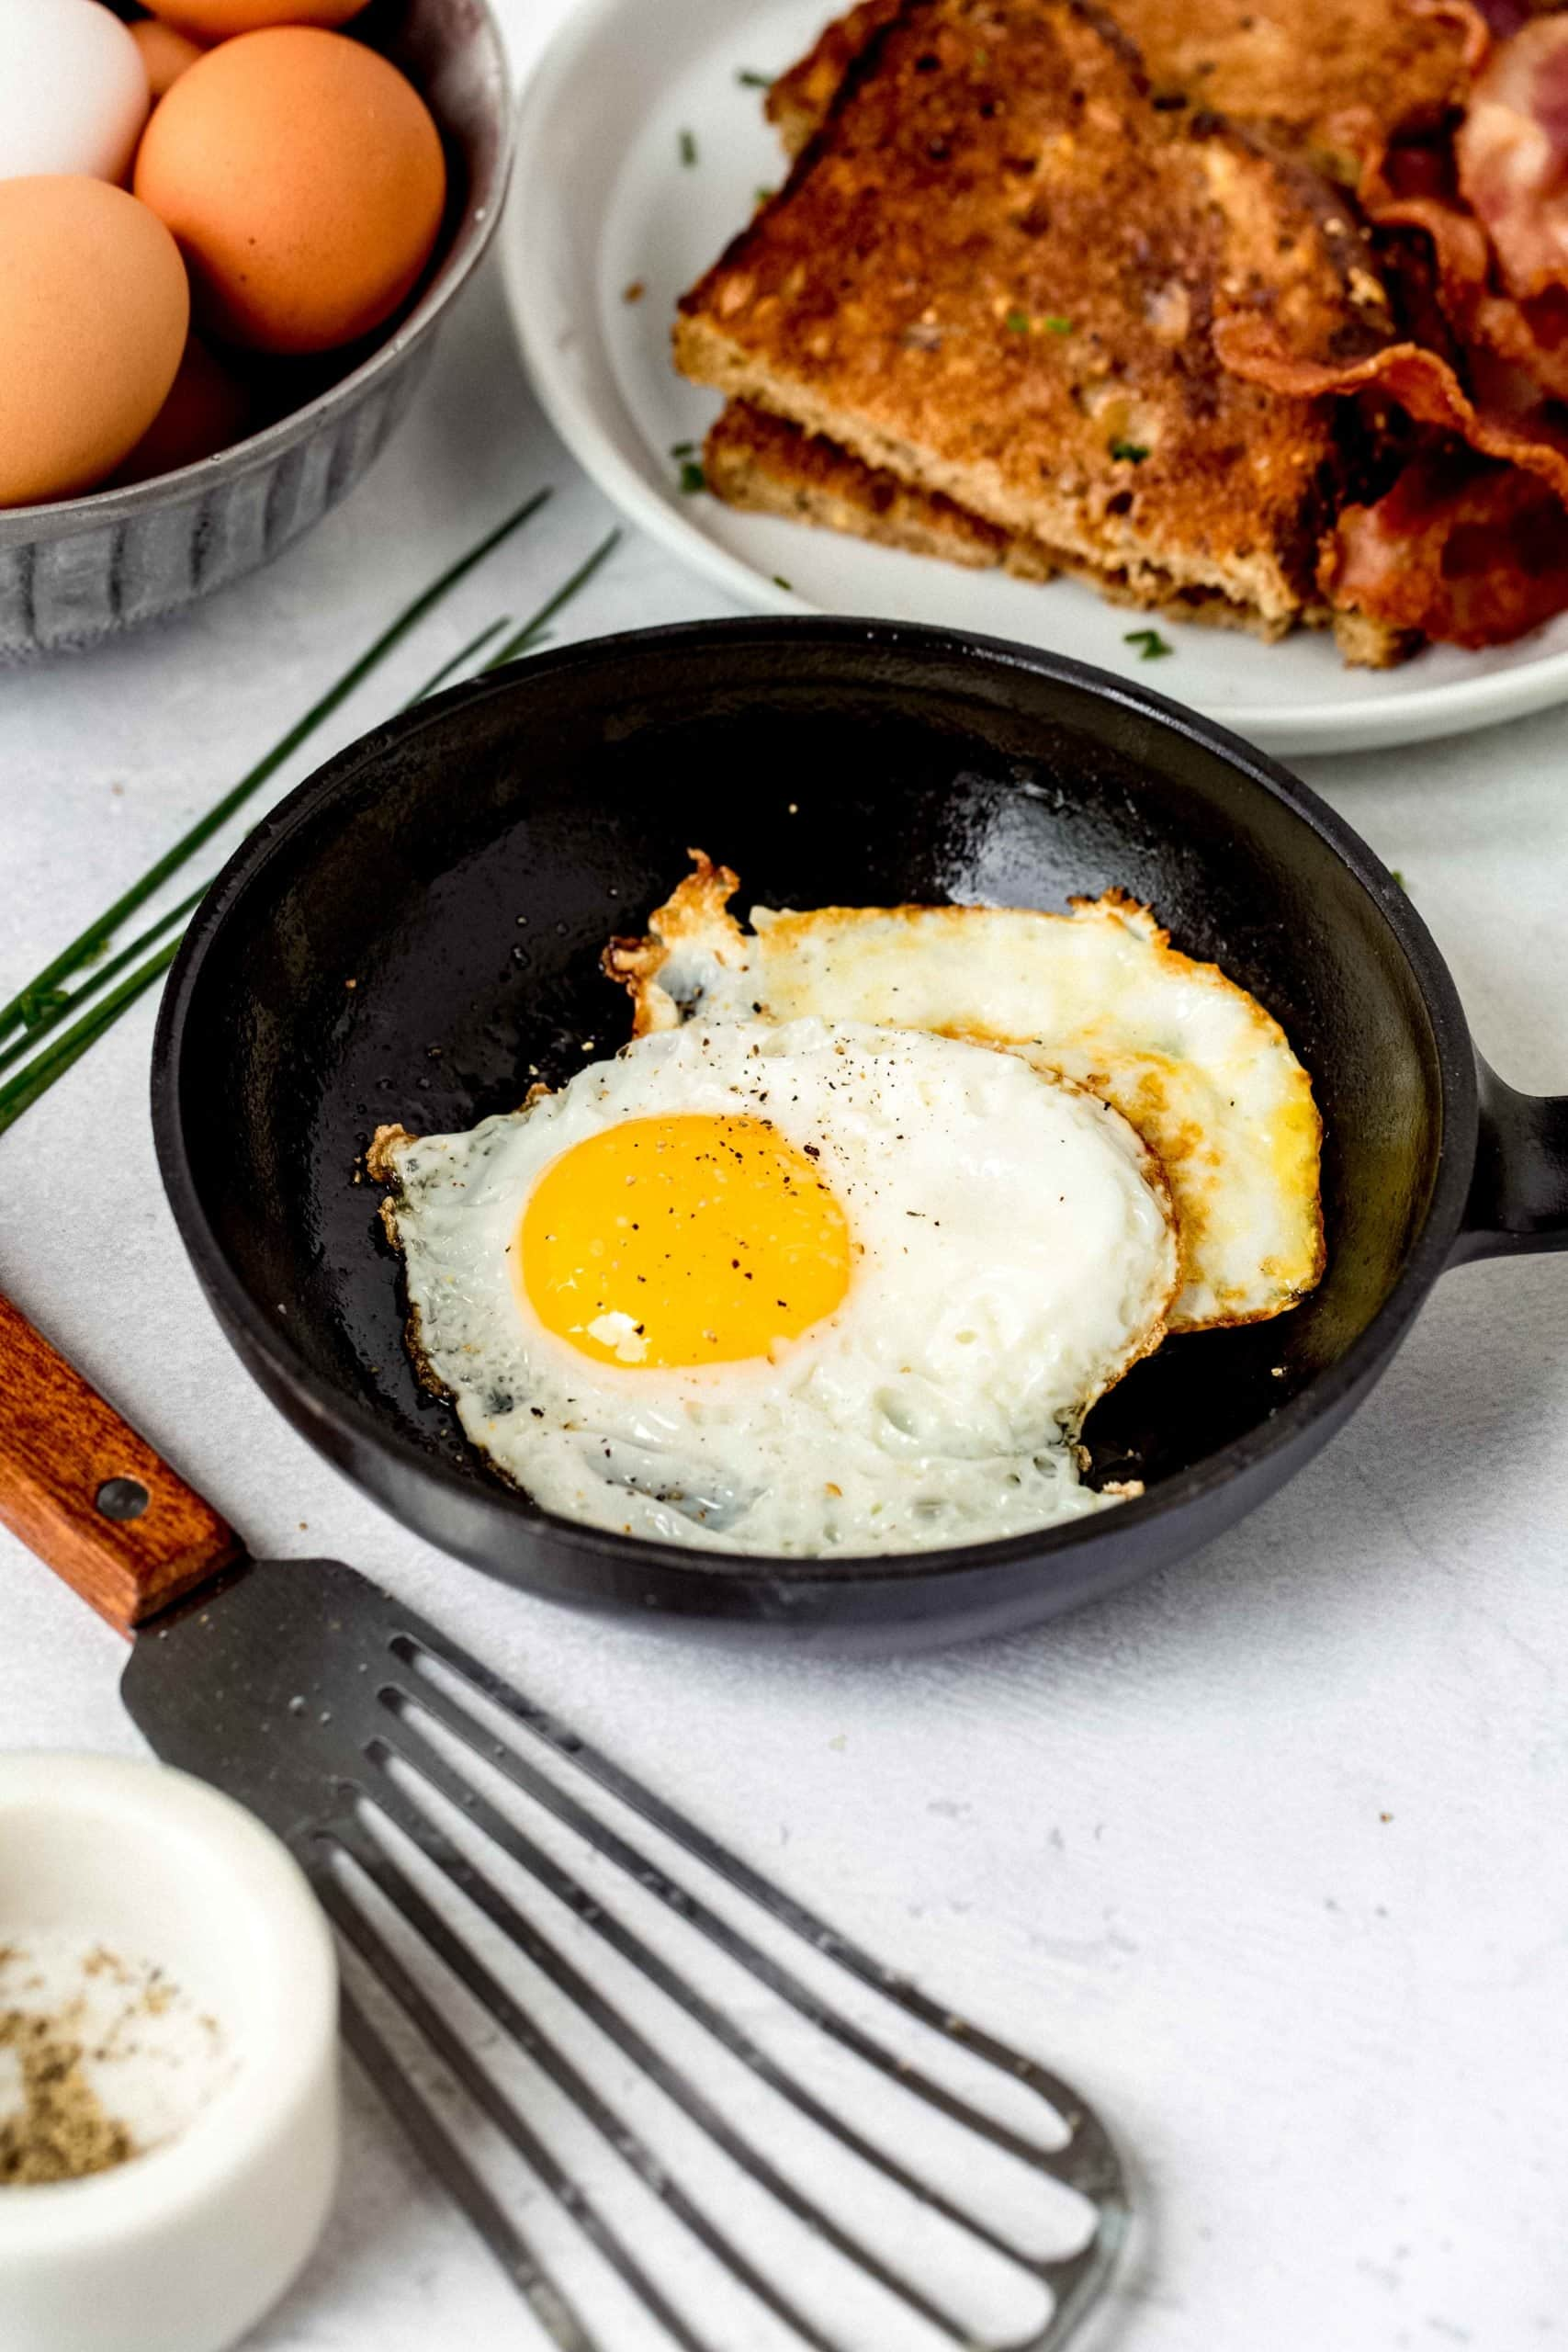 Two fried eggs in a small black frying pan. A spatula is in front of the pan and a plate of toast and some brown eggs are in the background.